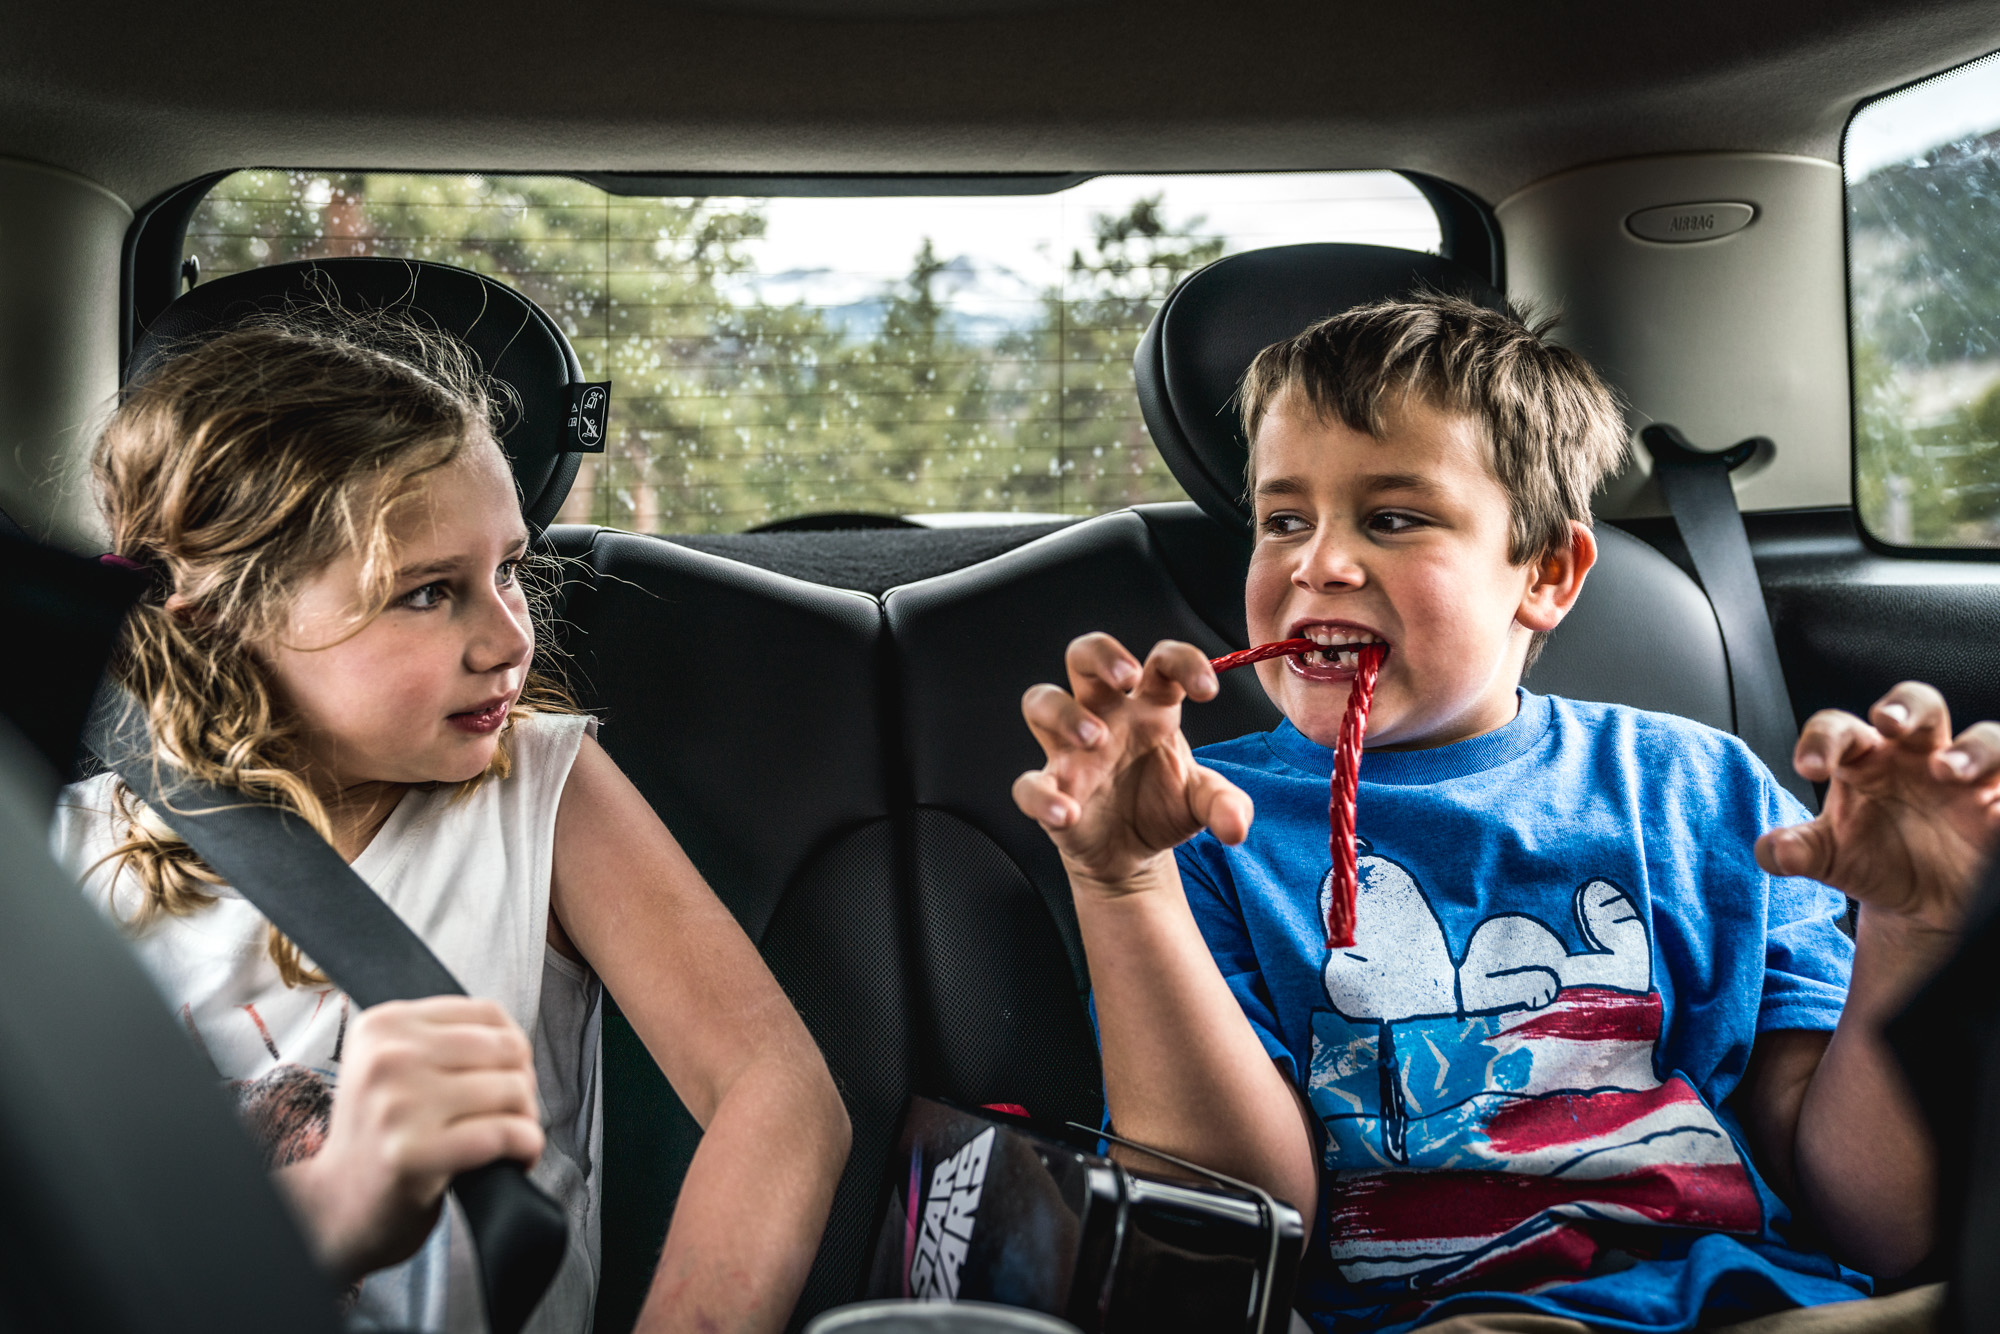 Color photo of a little boy with twizzlers in his mouth like fangs as he growls at his sister who is sitting in the back seat of their car with him.